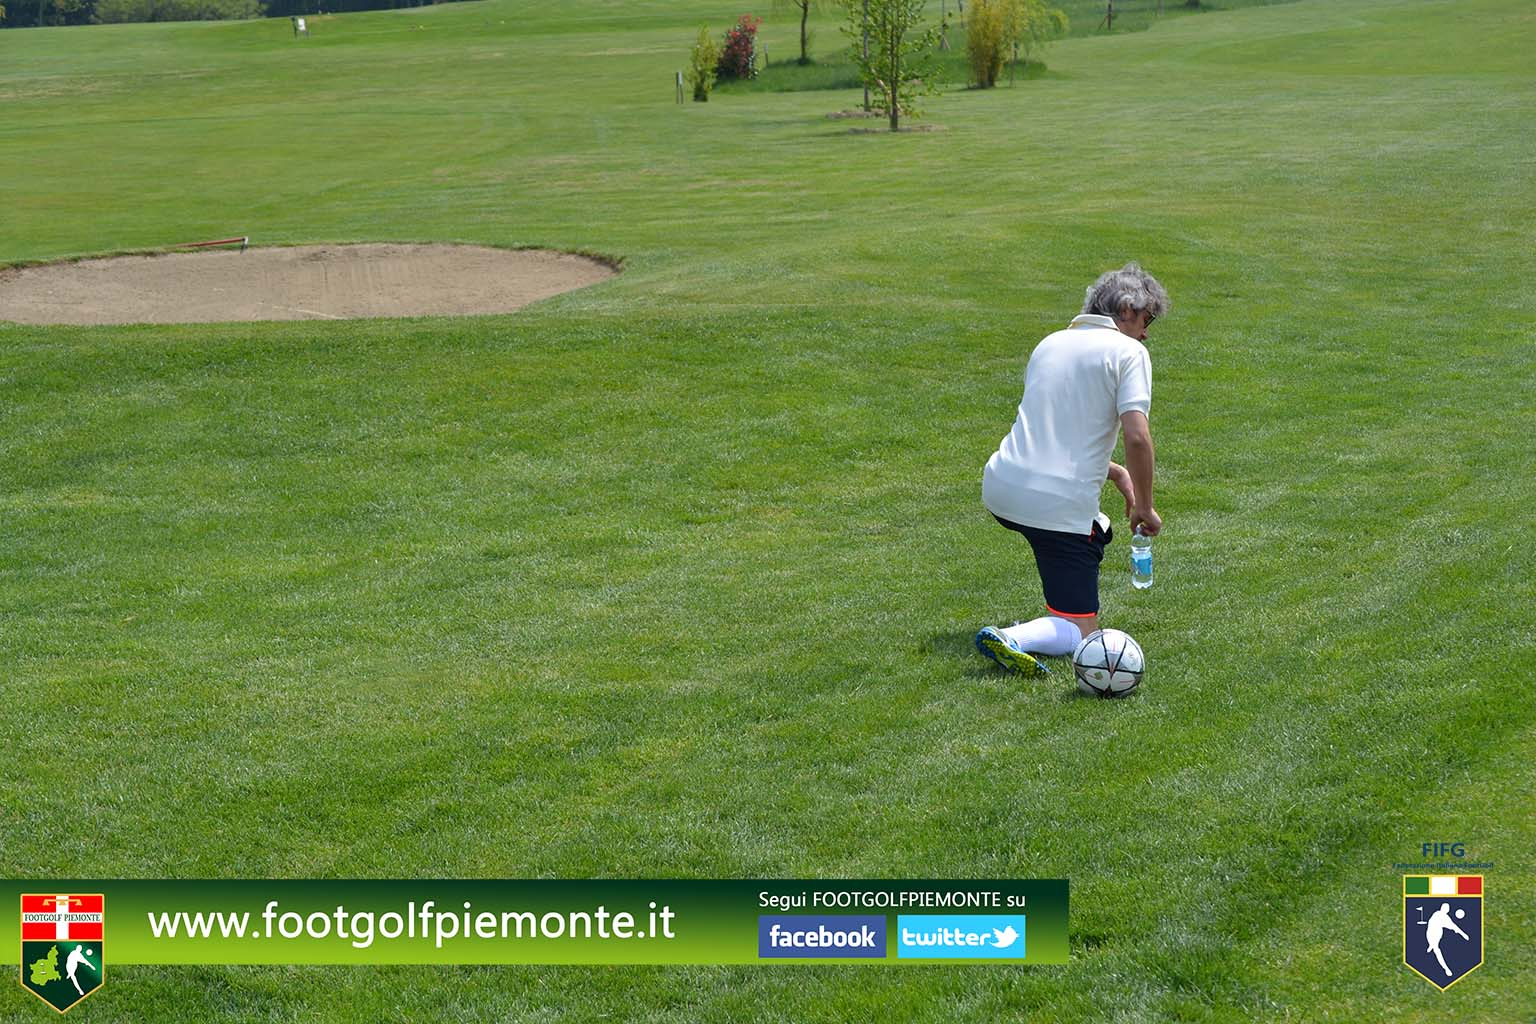 FOTO 9 Regions' Cup Footgolf Piemonte 2016 Golf Città di Asti (At) 30apr16-31